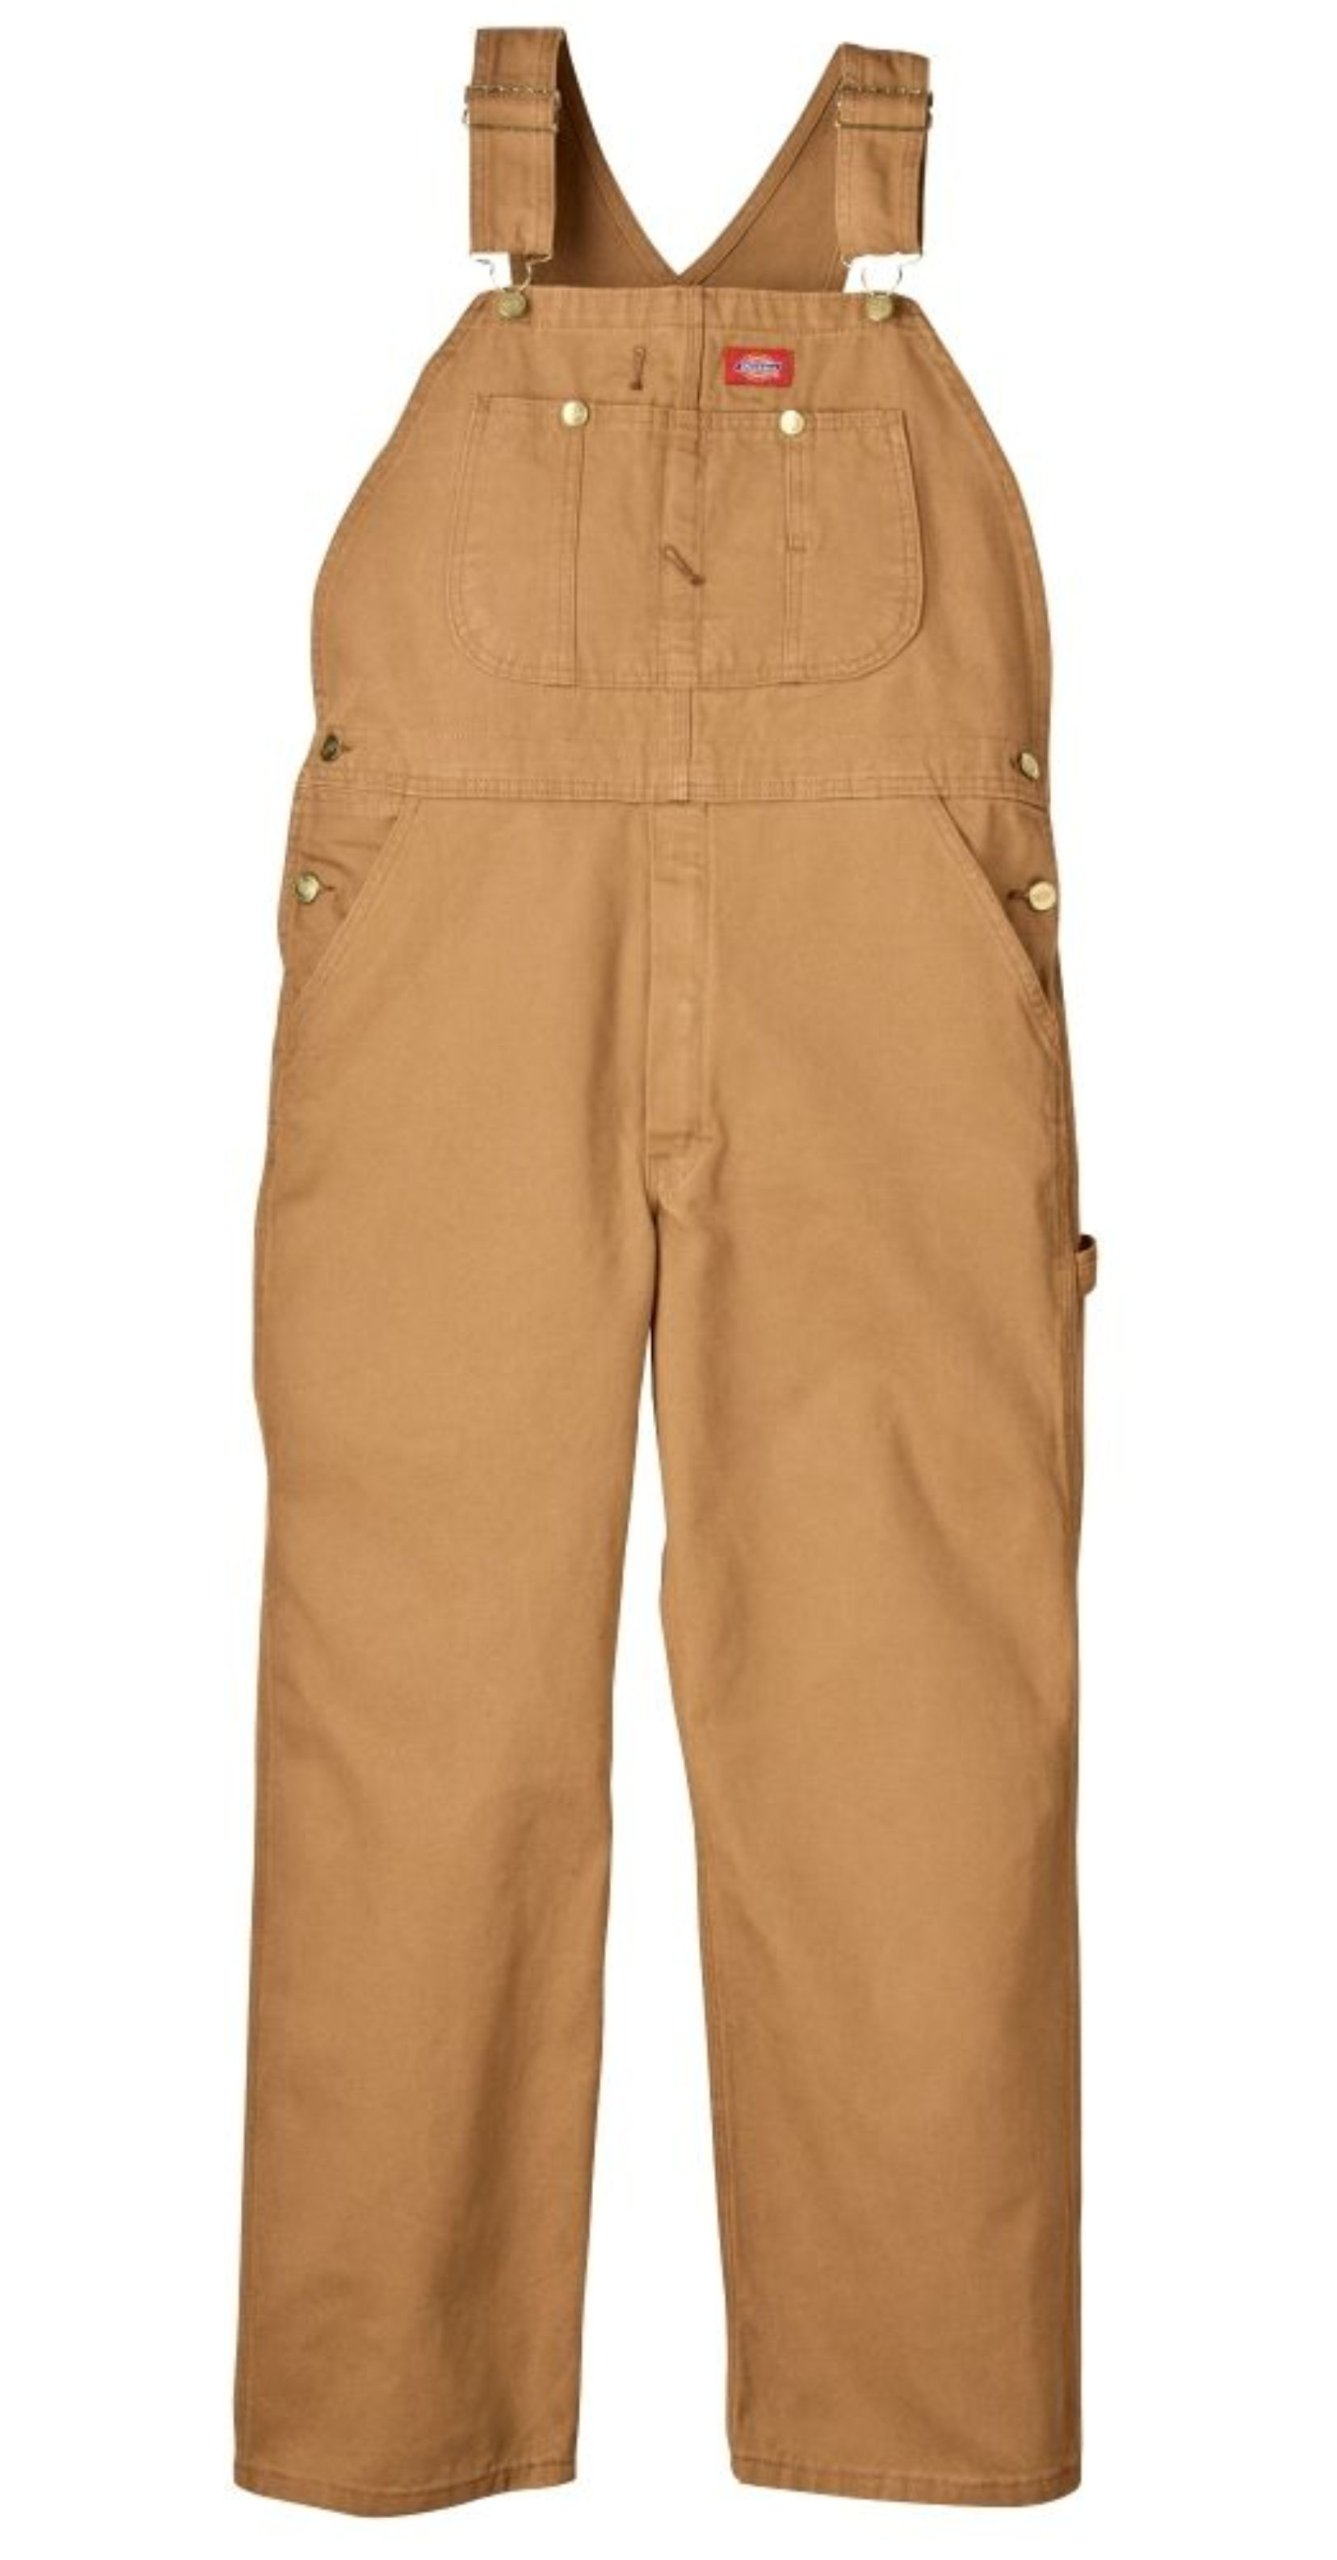 Dickies Men's Bib Overall, Brown Duck, 34X32